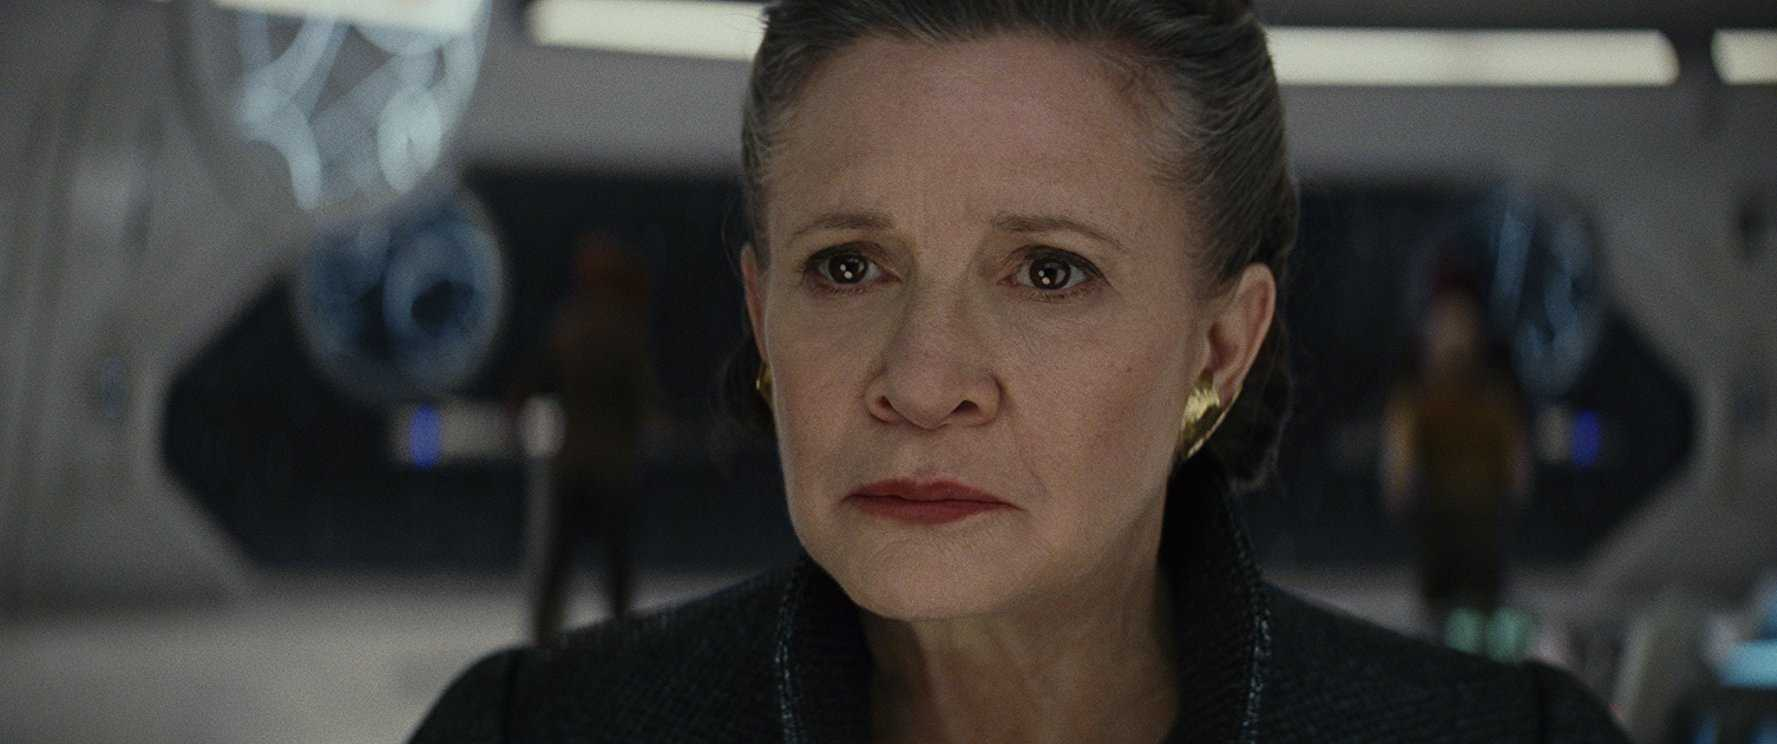 Carrie Fisher Wanted 'To Do Right' With Female Star Wars Fans In The Last Jedi | carrie fisher